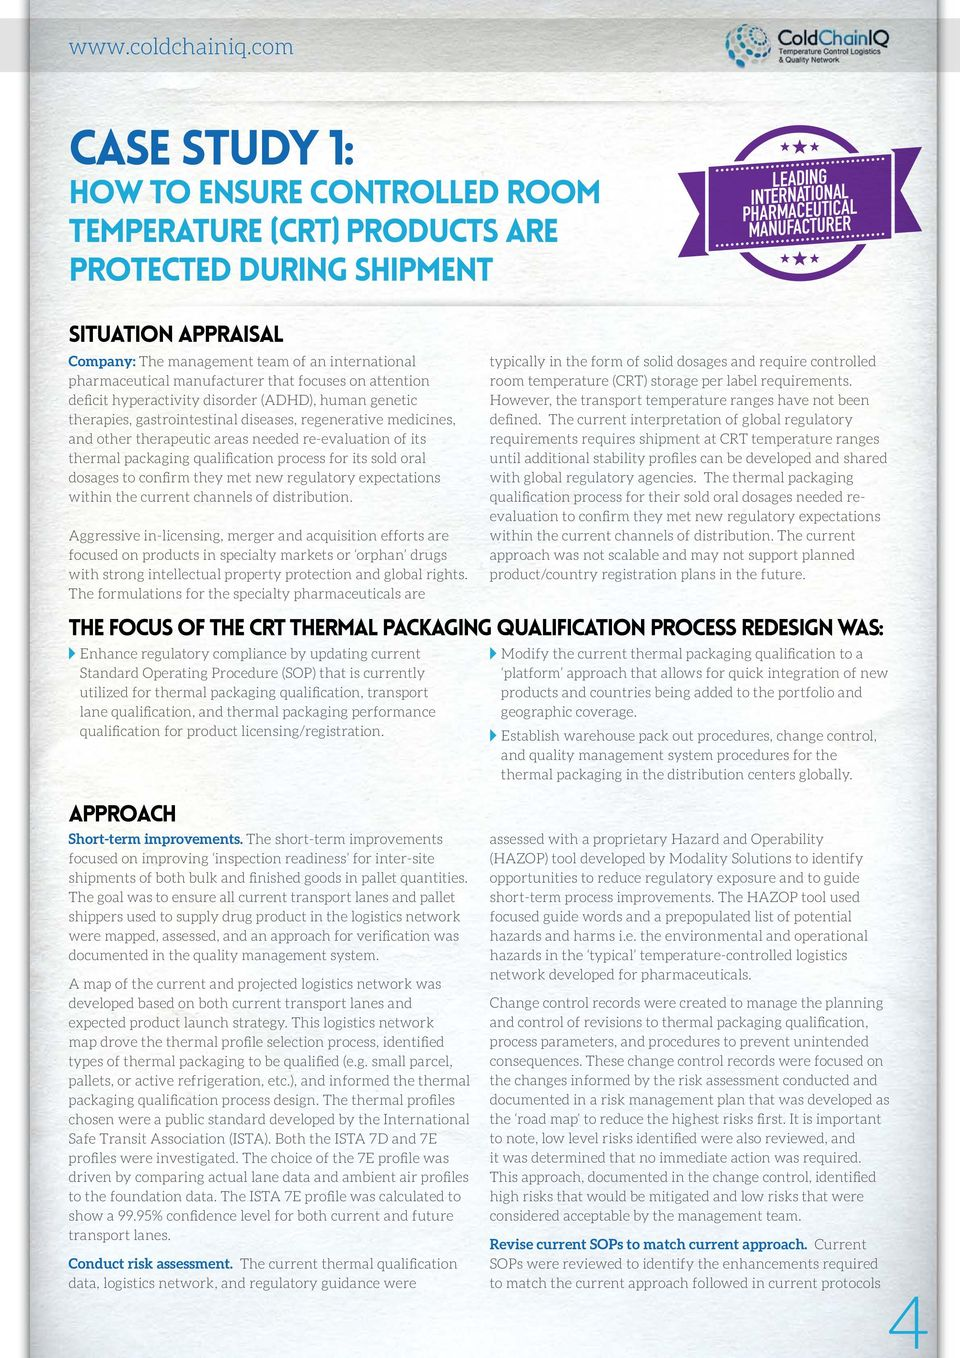 therapeutic areas needed re-evaluation of its thermal packaging qualification process for its sold oral dosages to confirm they met new regulatory expectations within the current channels of